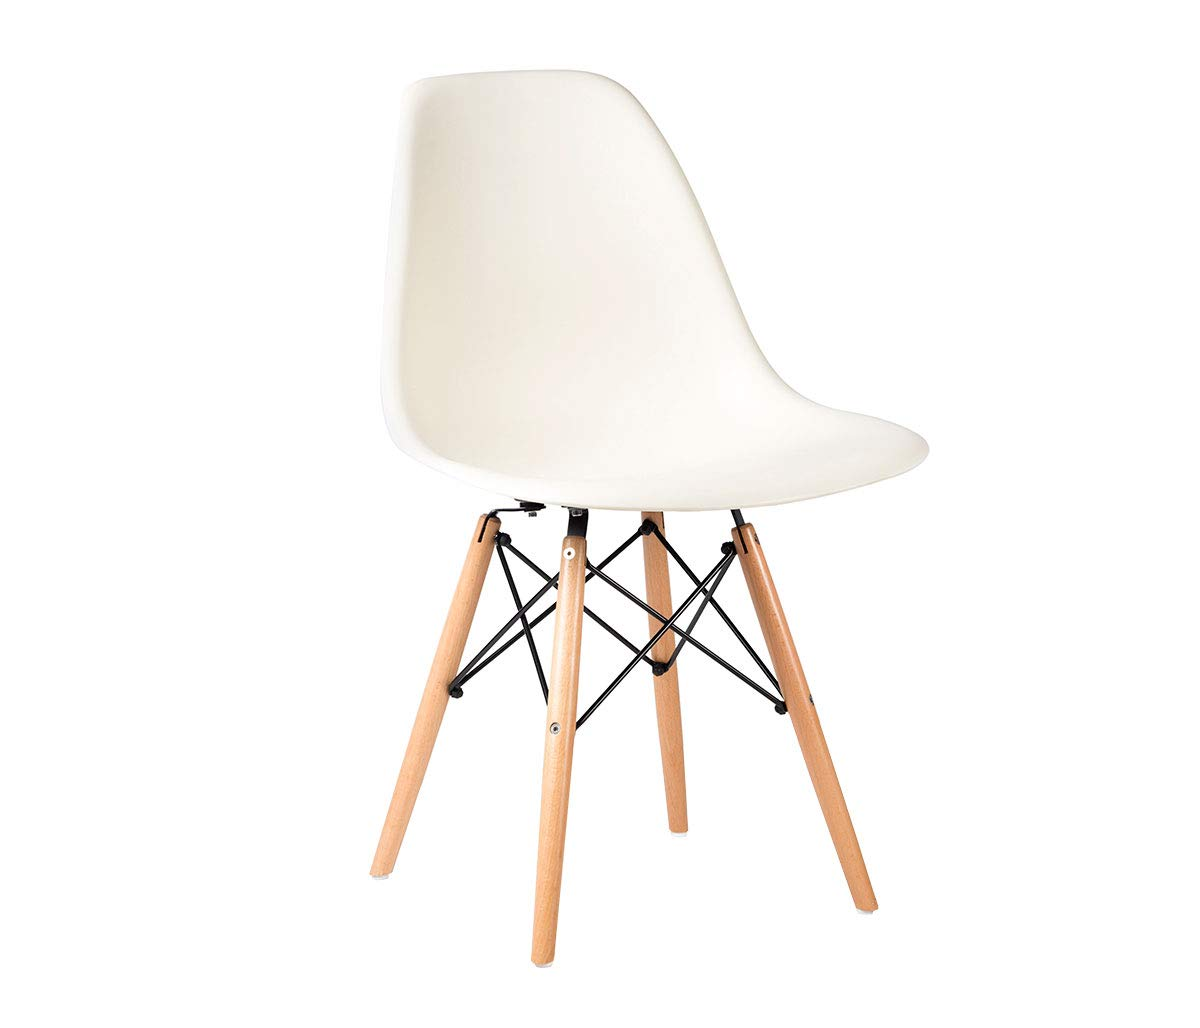 Set de 4 sillas Replica Eames. Color Blanco